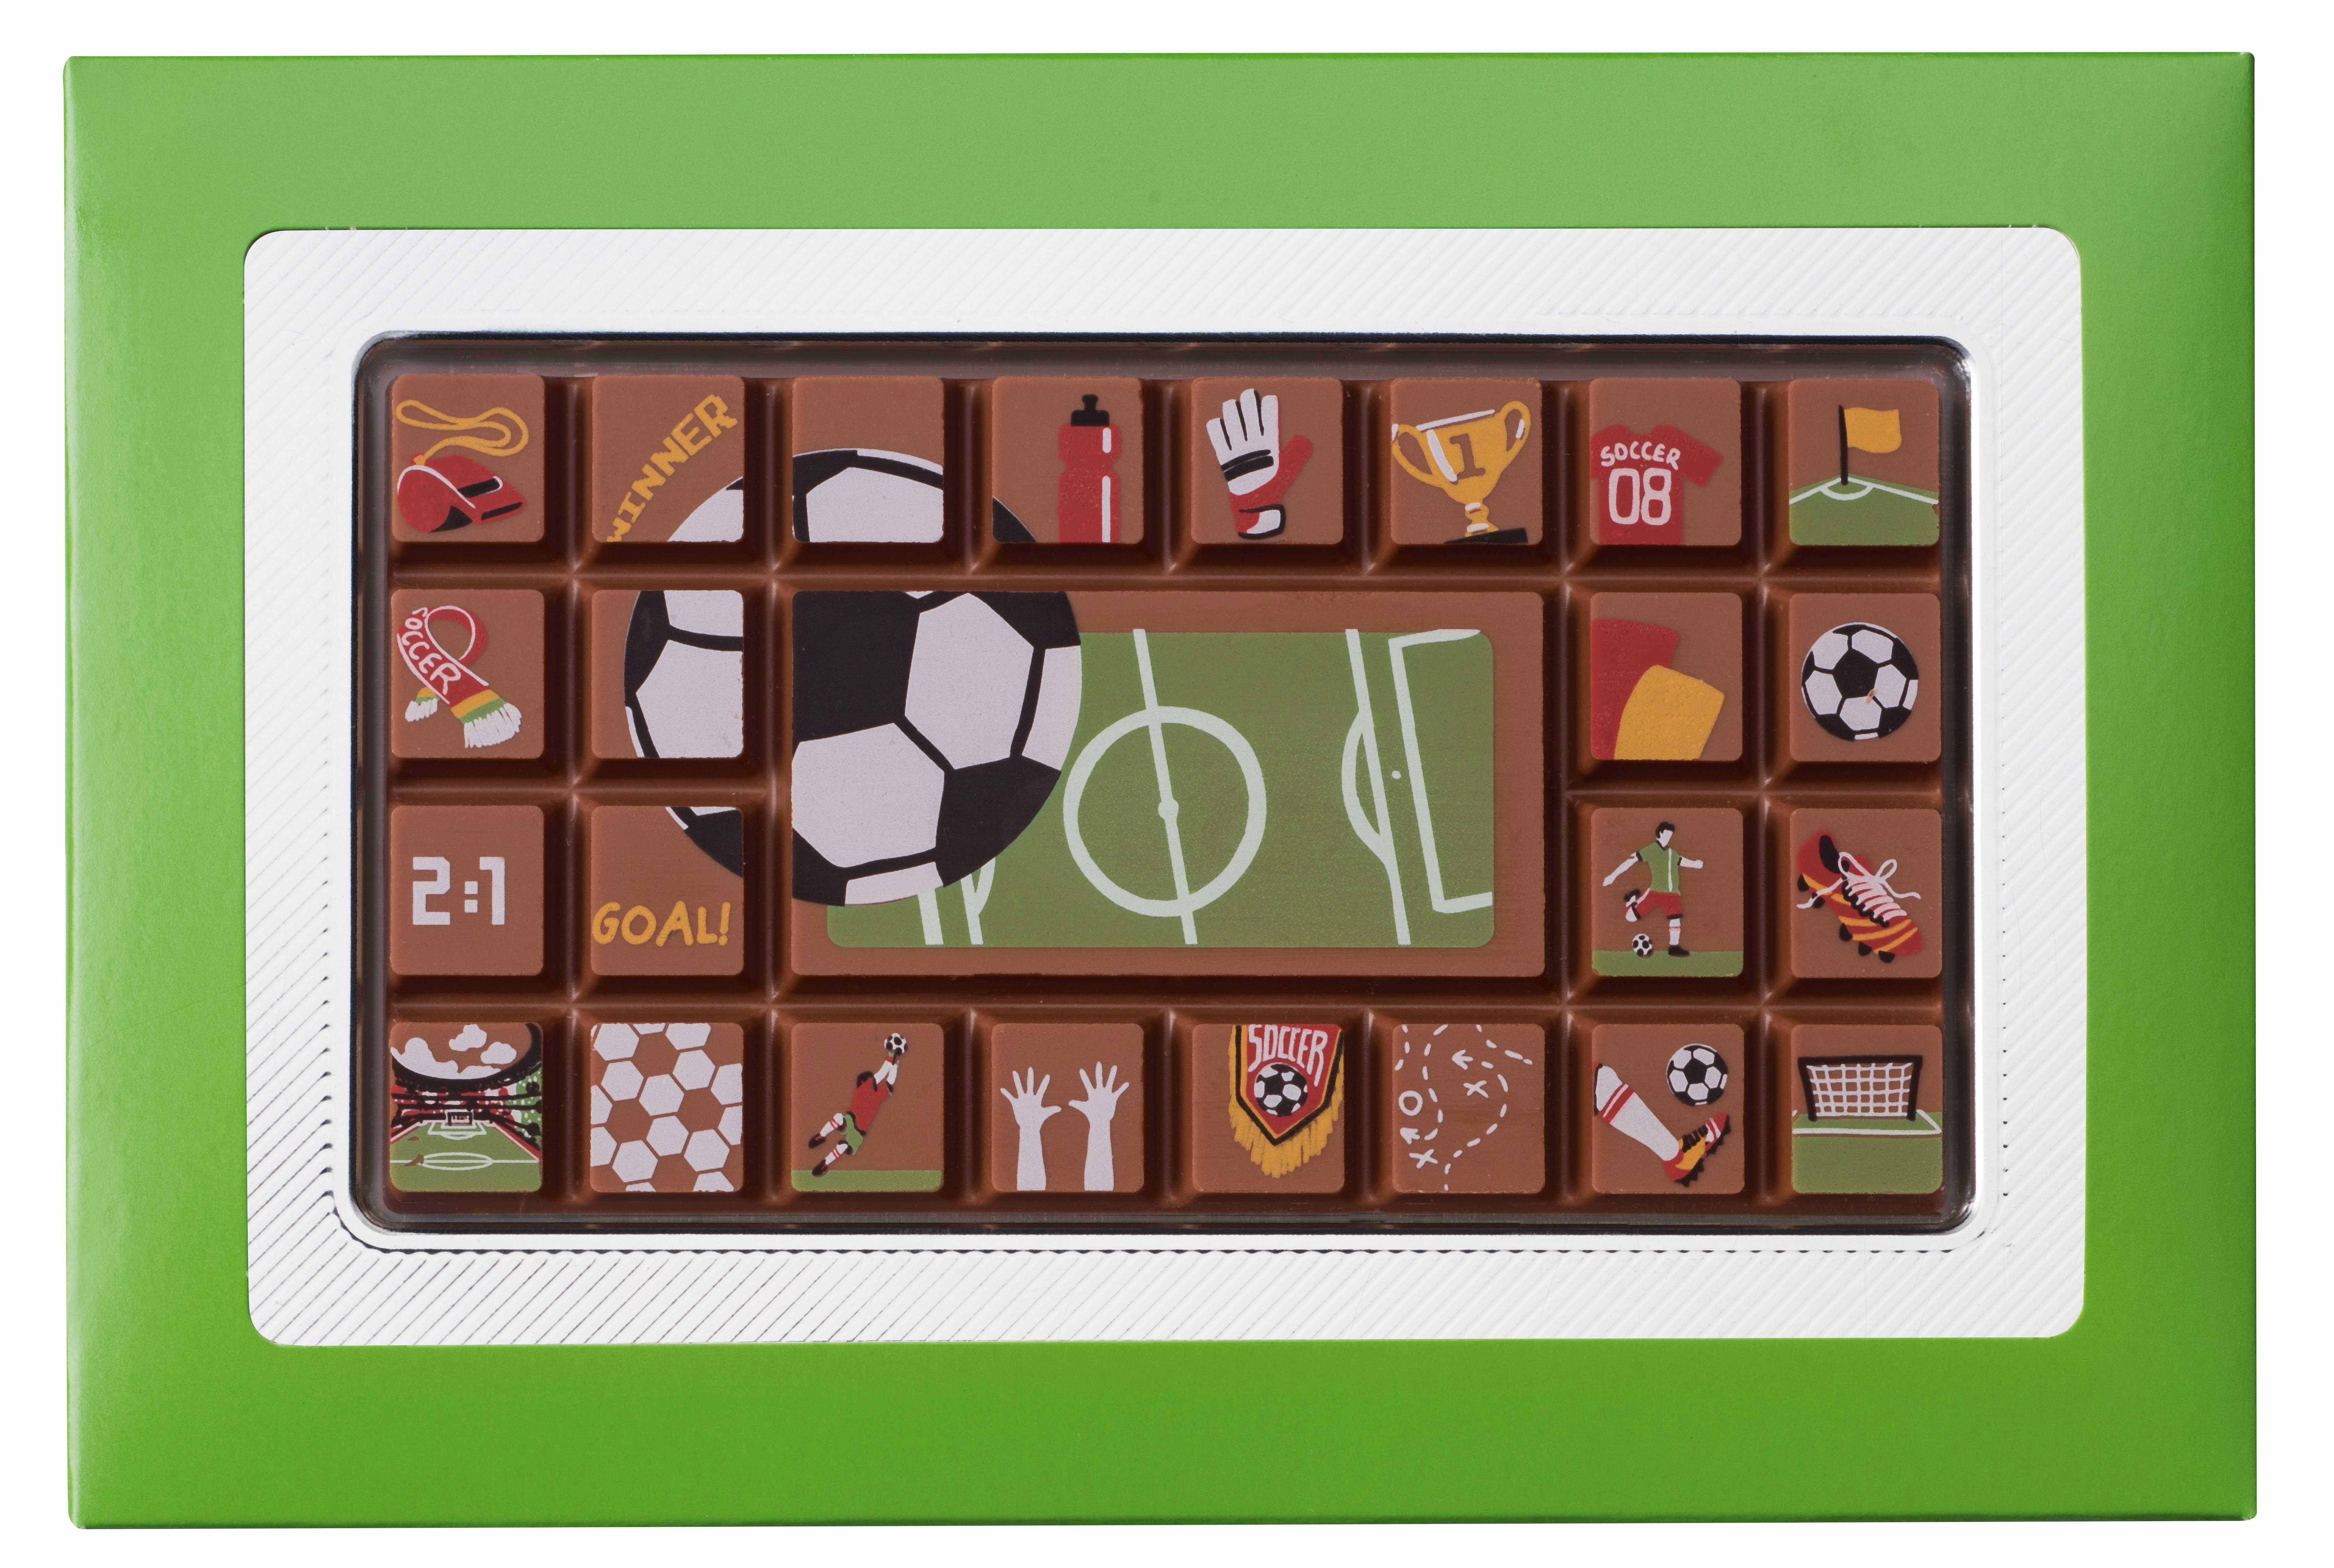 EURO 2016 - VOETBAL CHOCOLADE TABLET